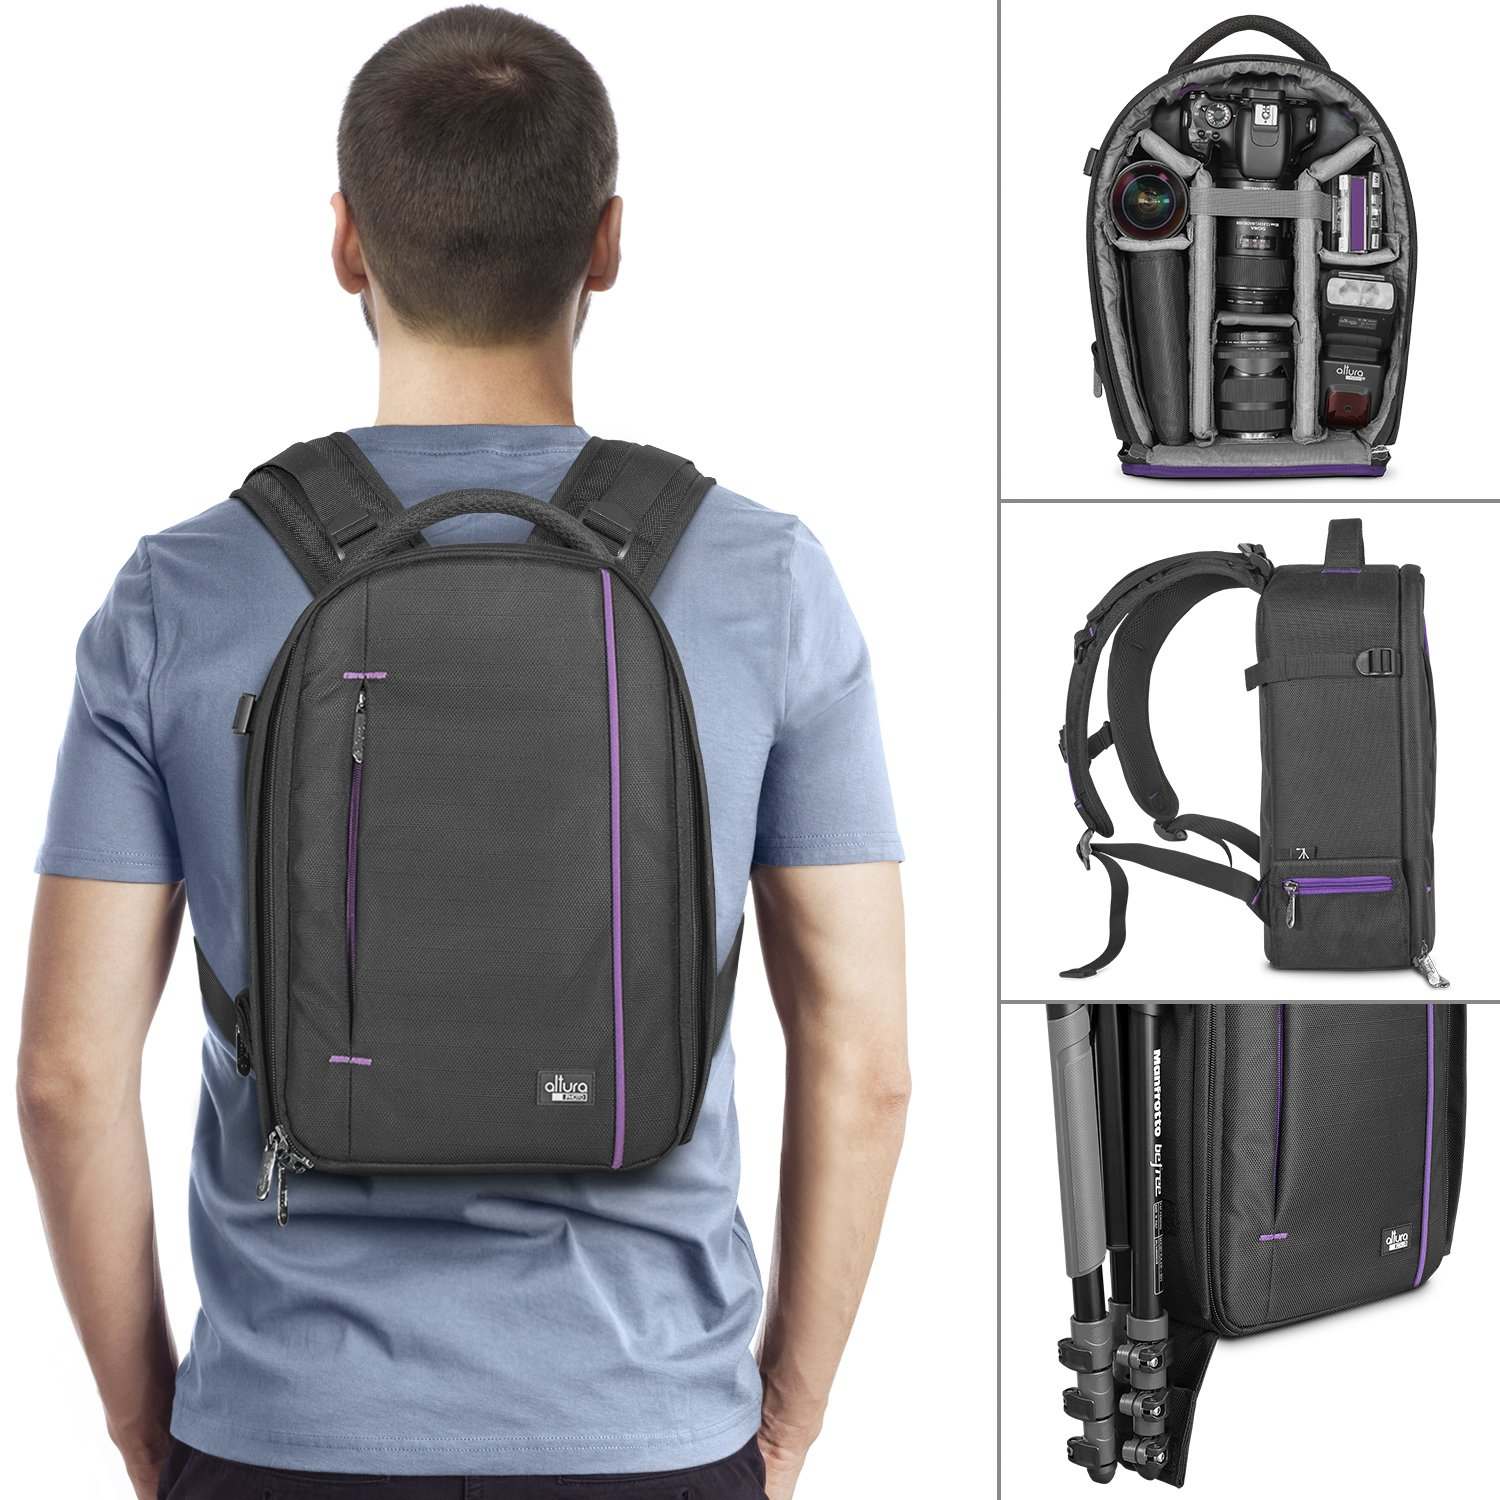 4d5b7b77f6ad Buy DSLR Camera and Mirrorless Backpack Bag by Altura Photo for Camera and  Lens (The Light Traveler Series) Online at Low Price in India